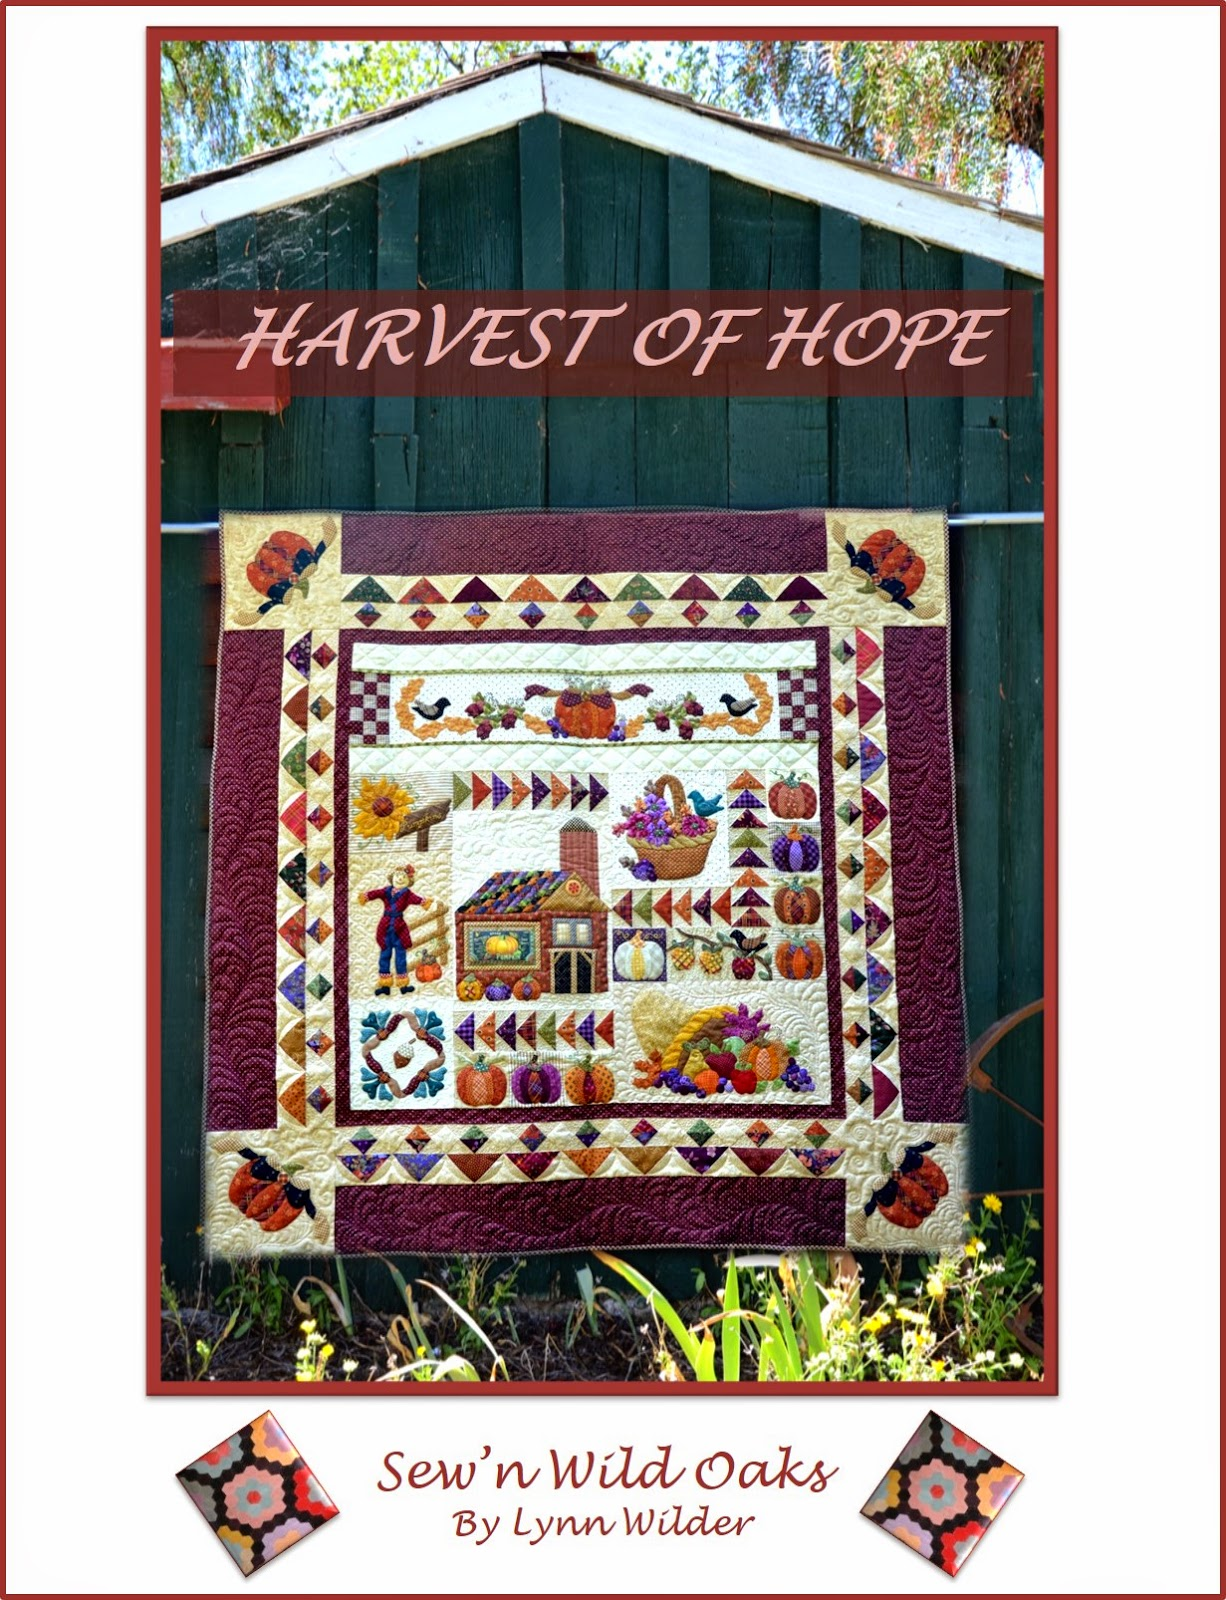 http://www.inbetweenstitches.com/shop/Patterns/p/Harvest-of-Hope-x2501692.htm